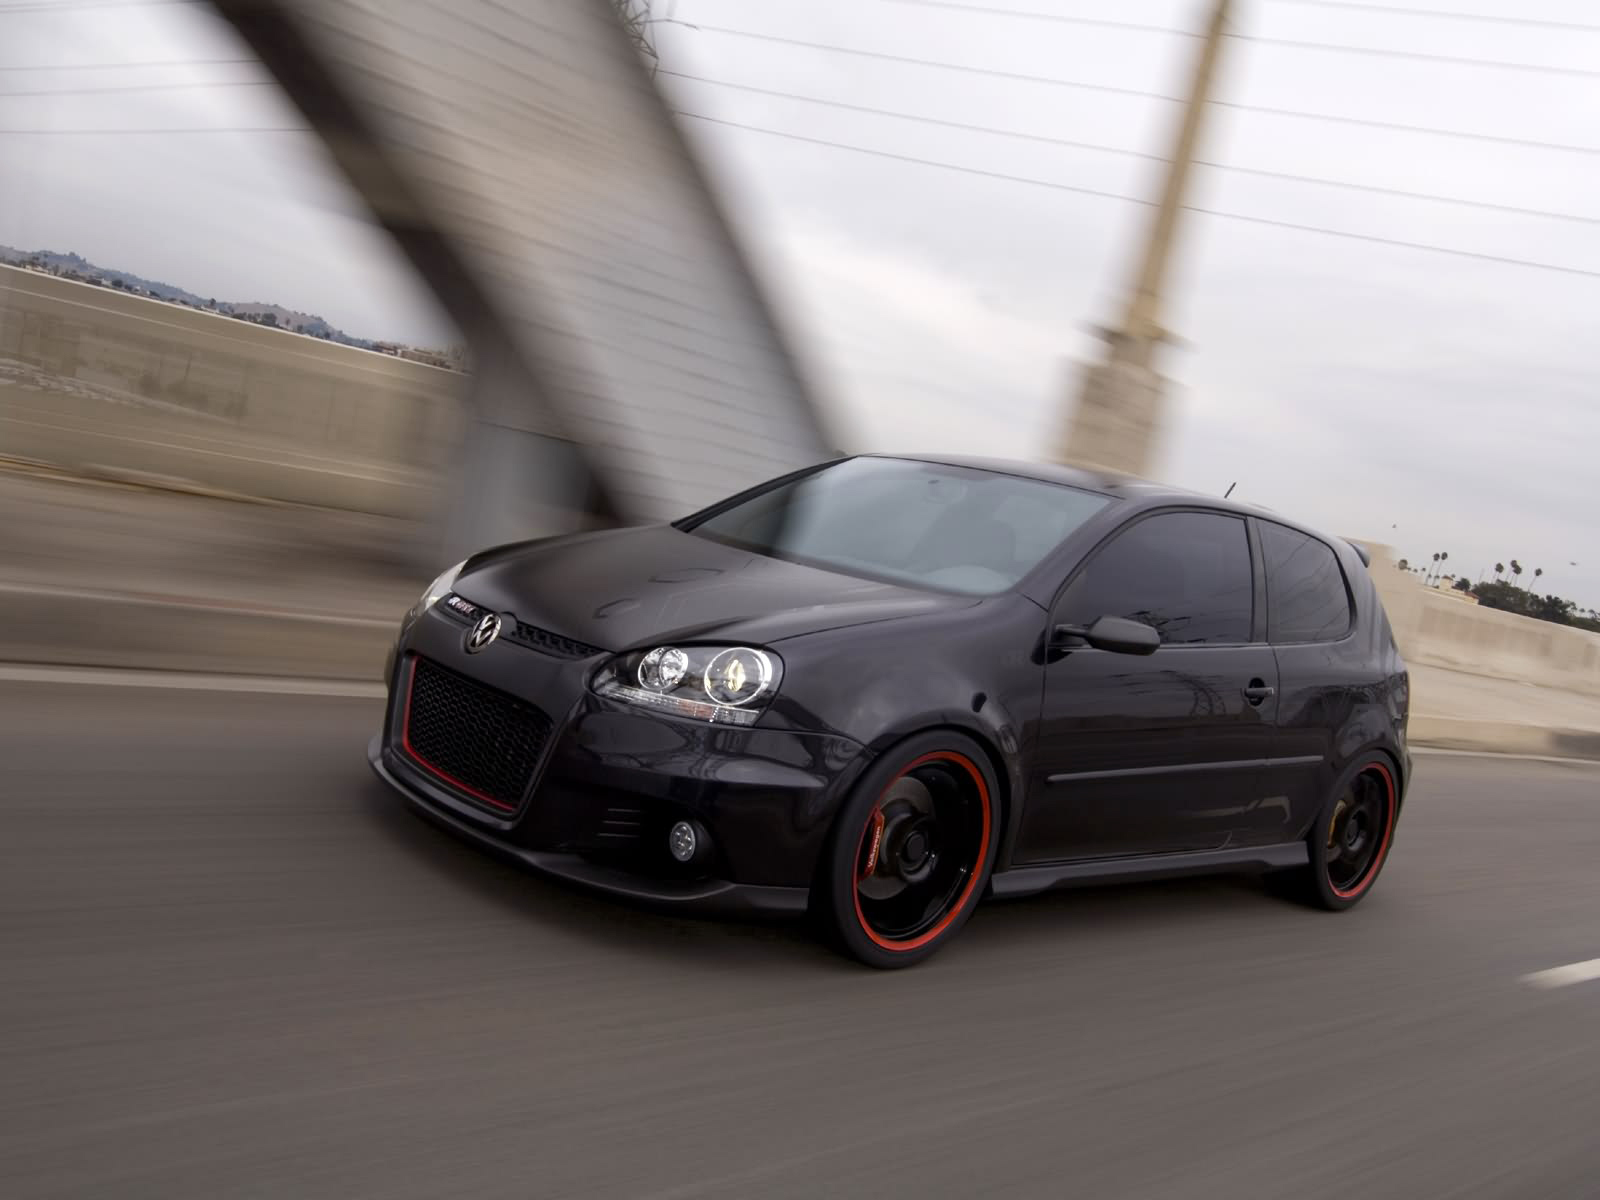 Golf R 400 >> Volkswagen Golf R GTI photos - PhotoGallery with 6 pics| CarsBase.com